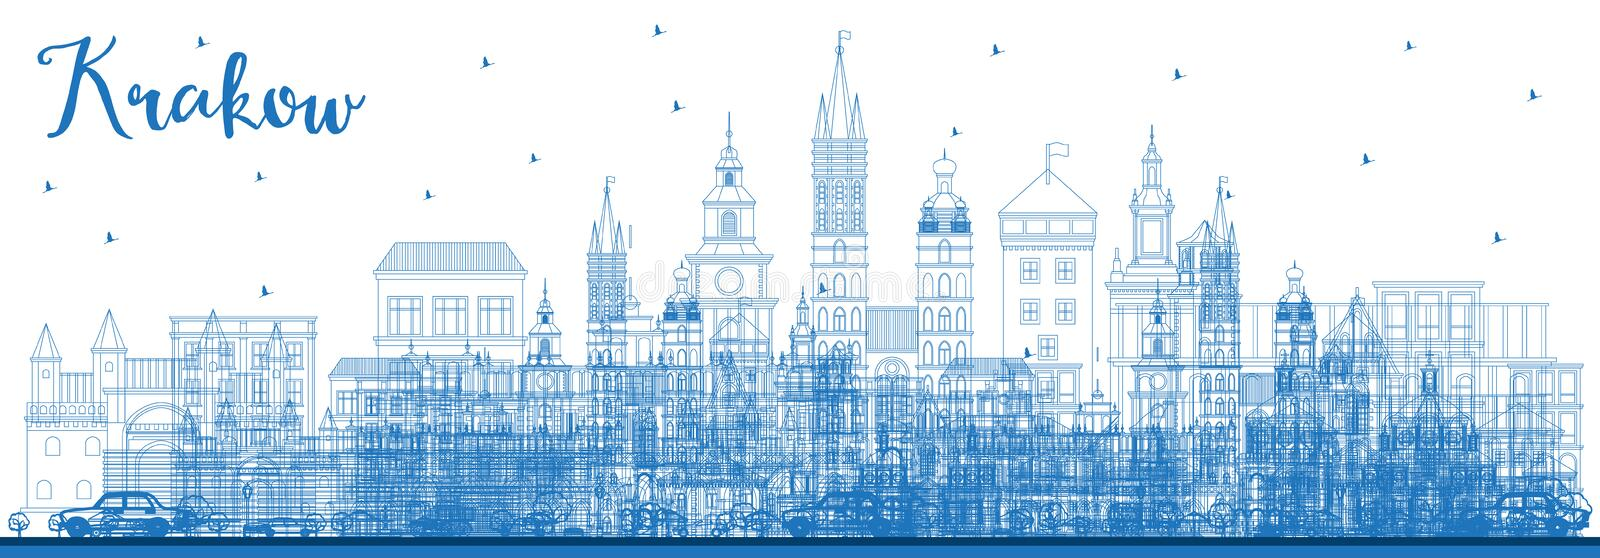 Outline Krakow Poland City Skyline with Blue Buildings. Vector Illustration. Business Travel and Tourism Concept with Historic Architecture. Krakow Cityscape vector illustration